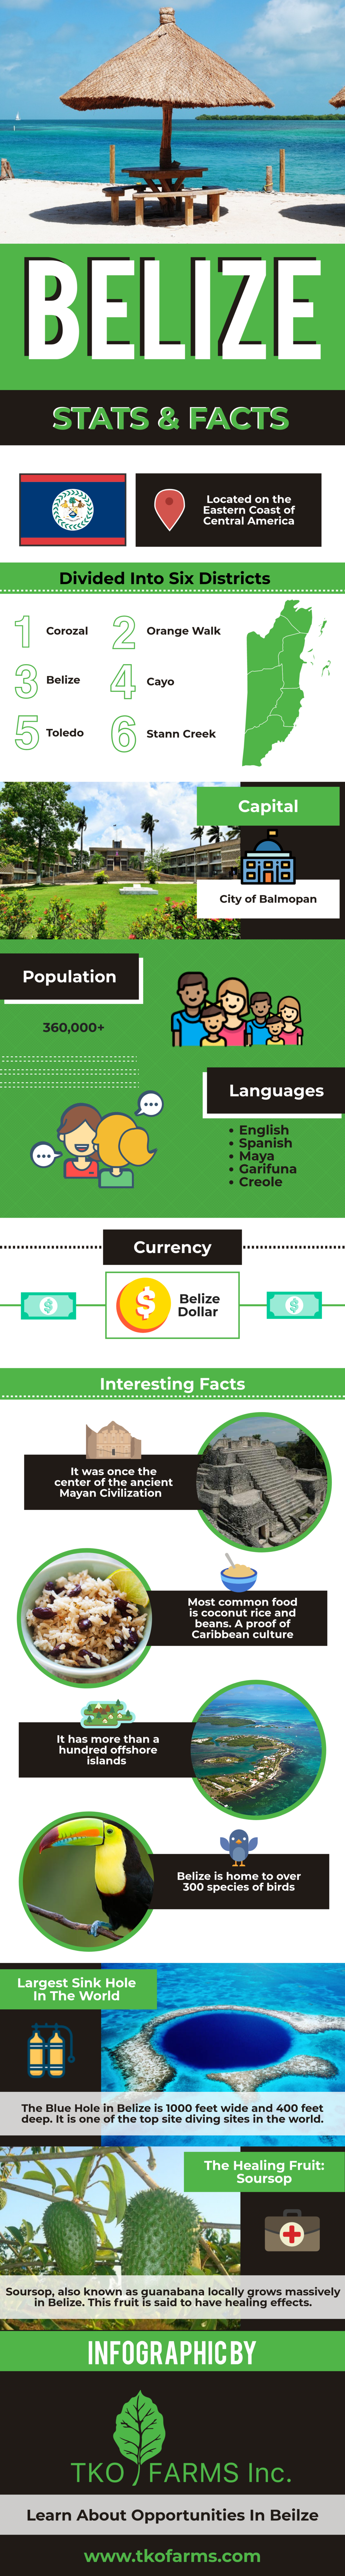 Belize Facts and Stats